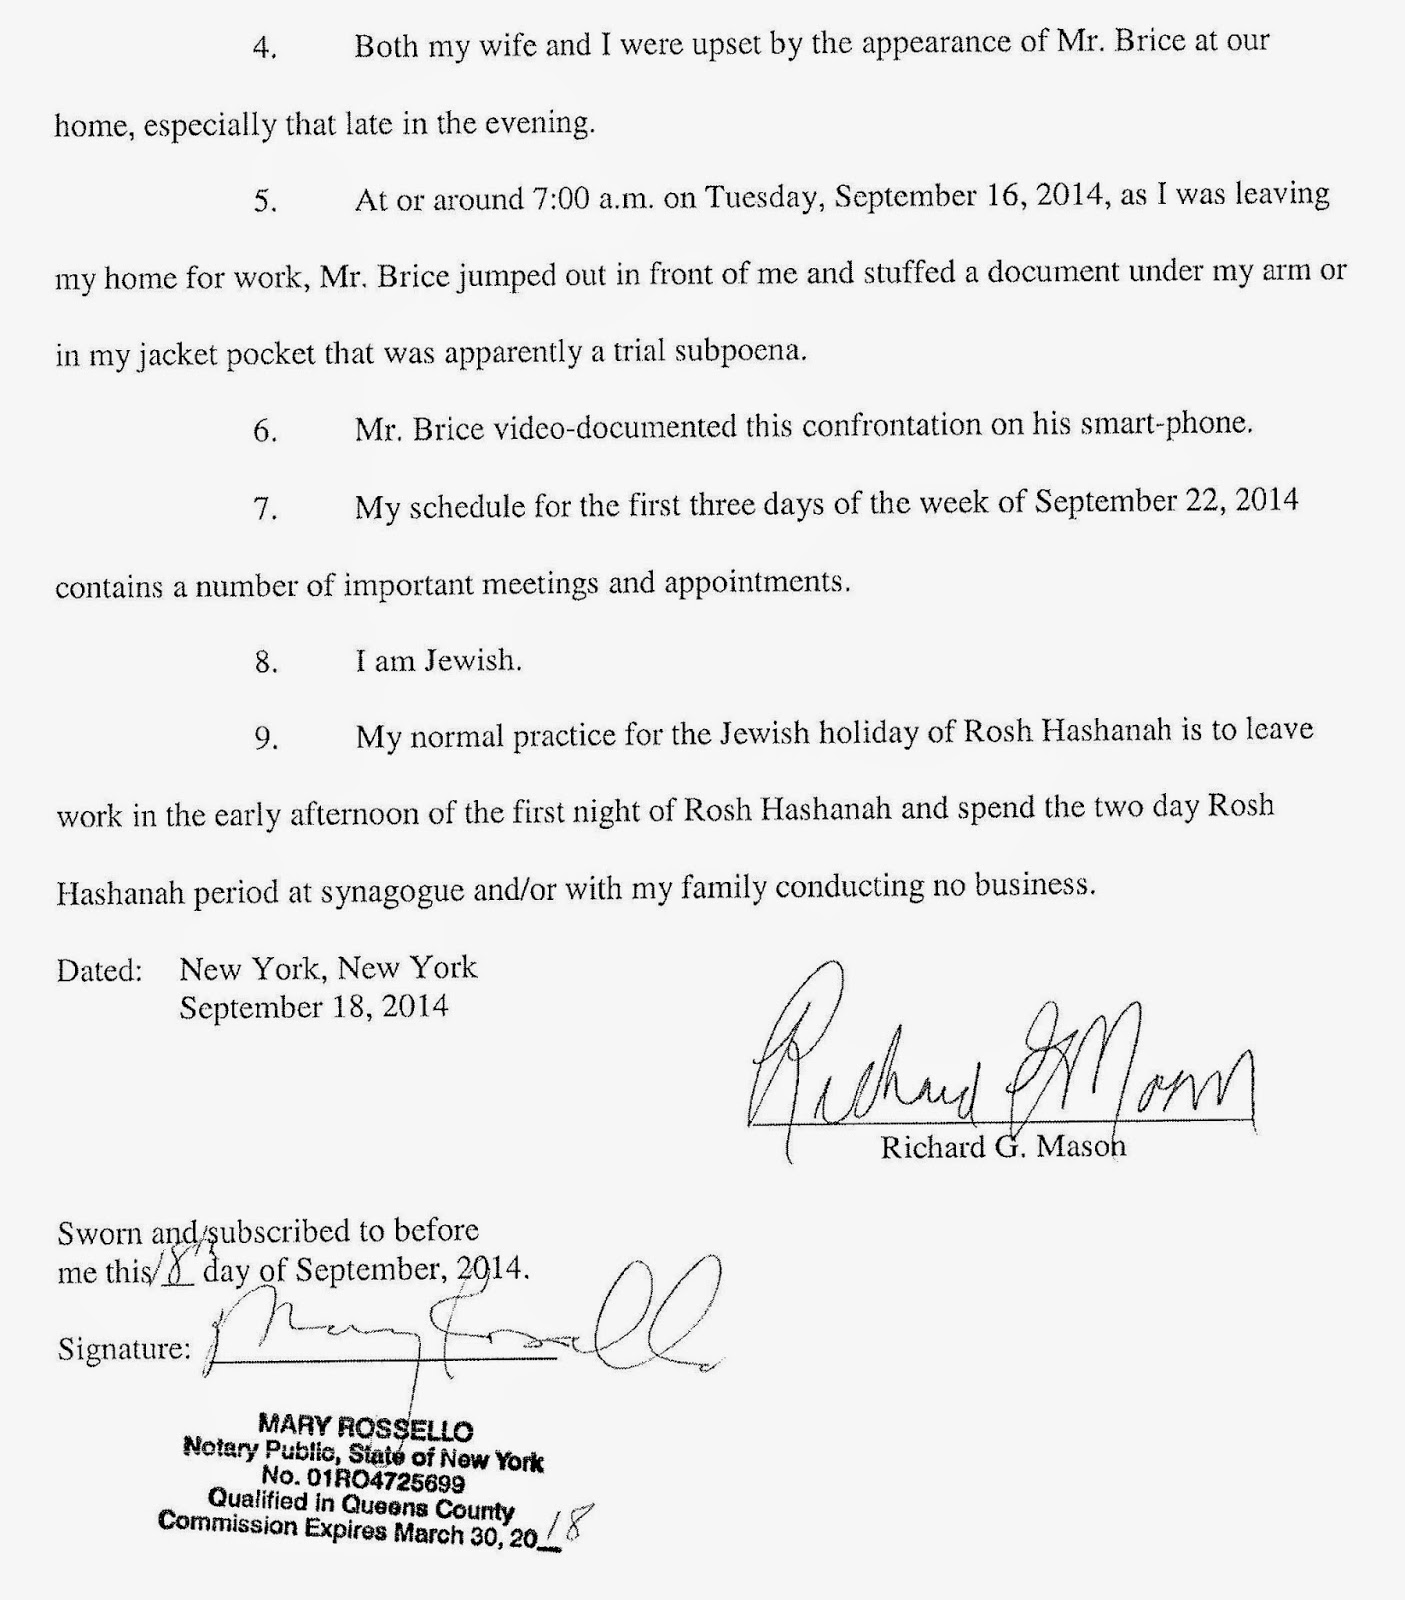 Page 2 Affidavit Of Richard Mason In Support Of His Motion On Short Notice  For An How To Become A Police Officer In New Jersey Notary Public  Index372439g